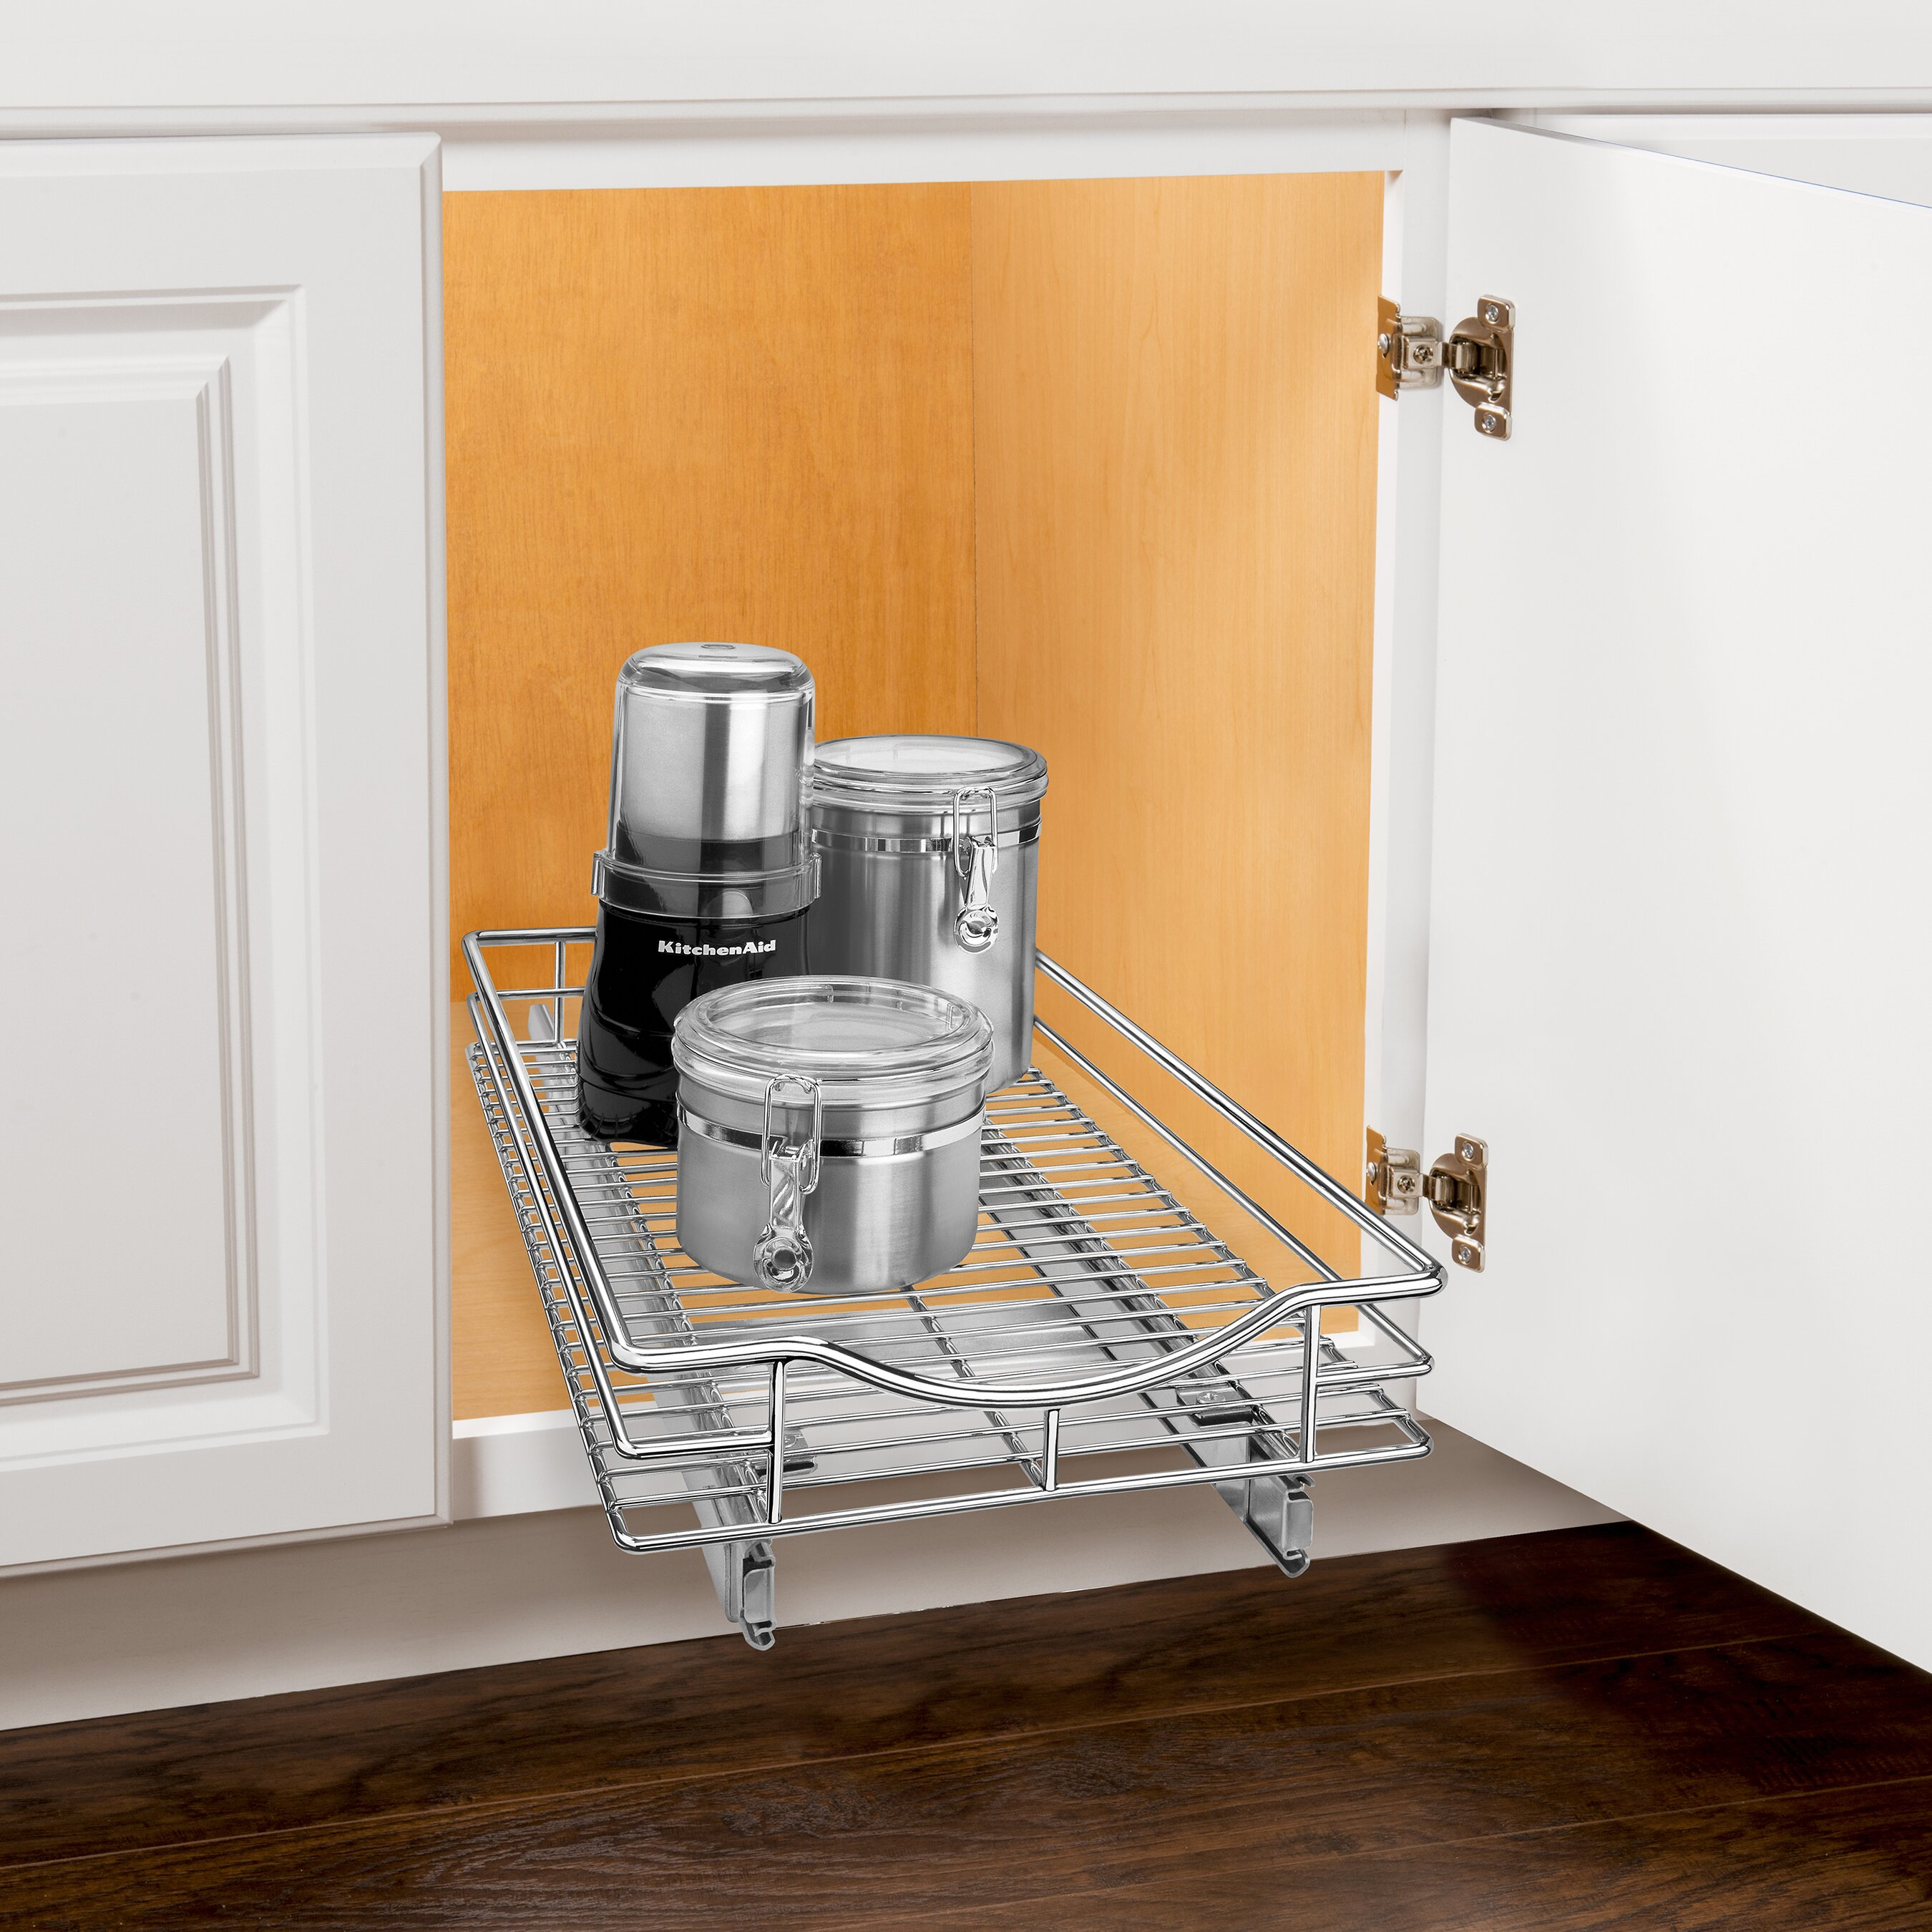 Pull Out Kitchen Cabinet Organizers: Lynk Lynk Professional Roll Out Cabinet Organizer